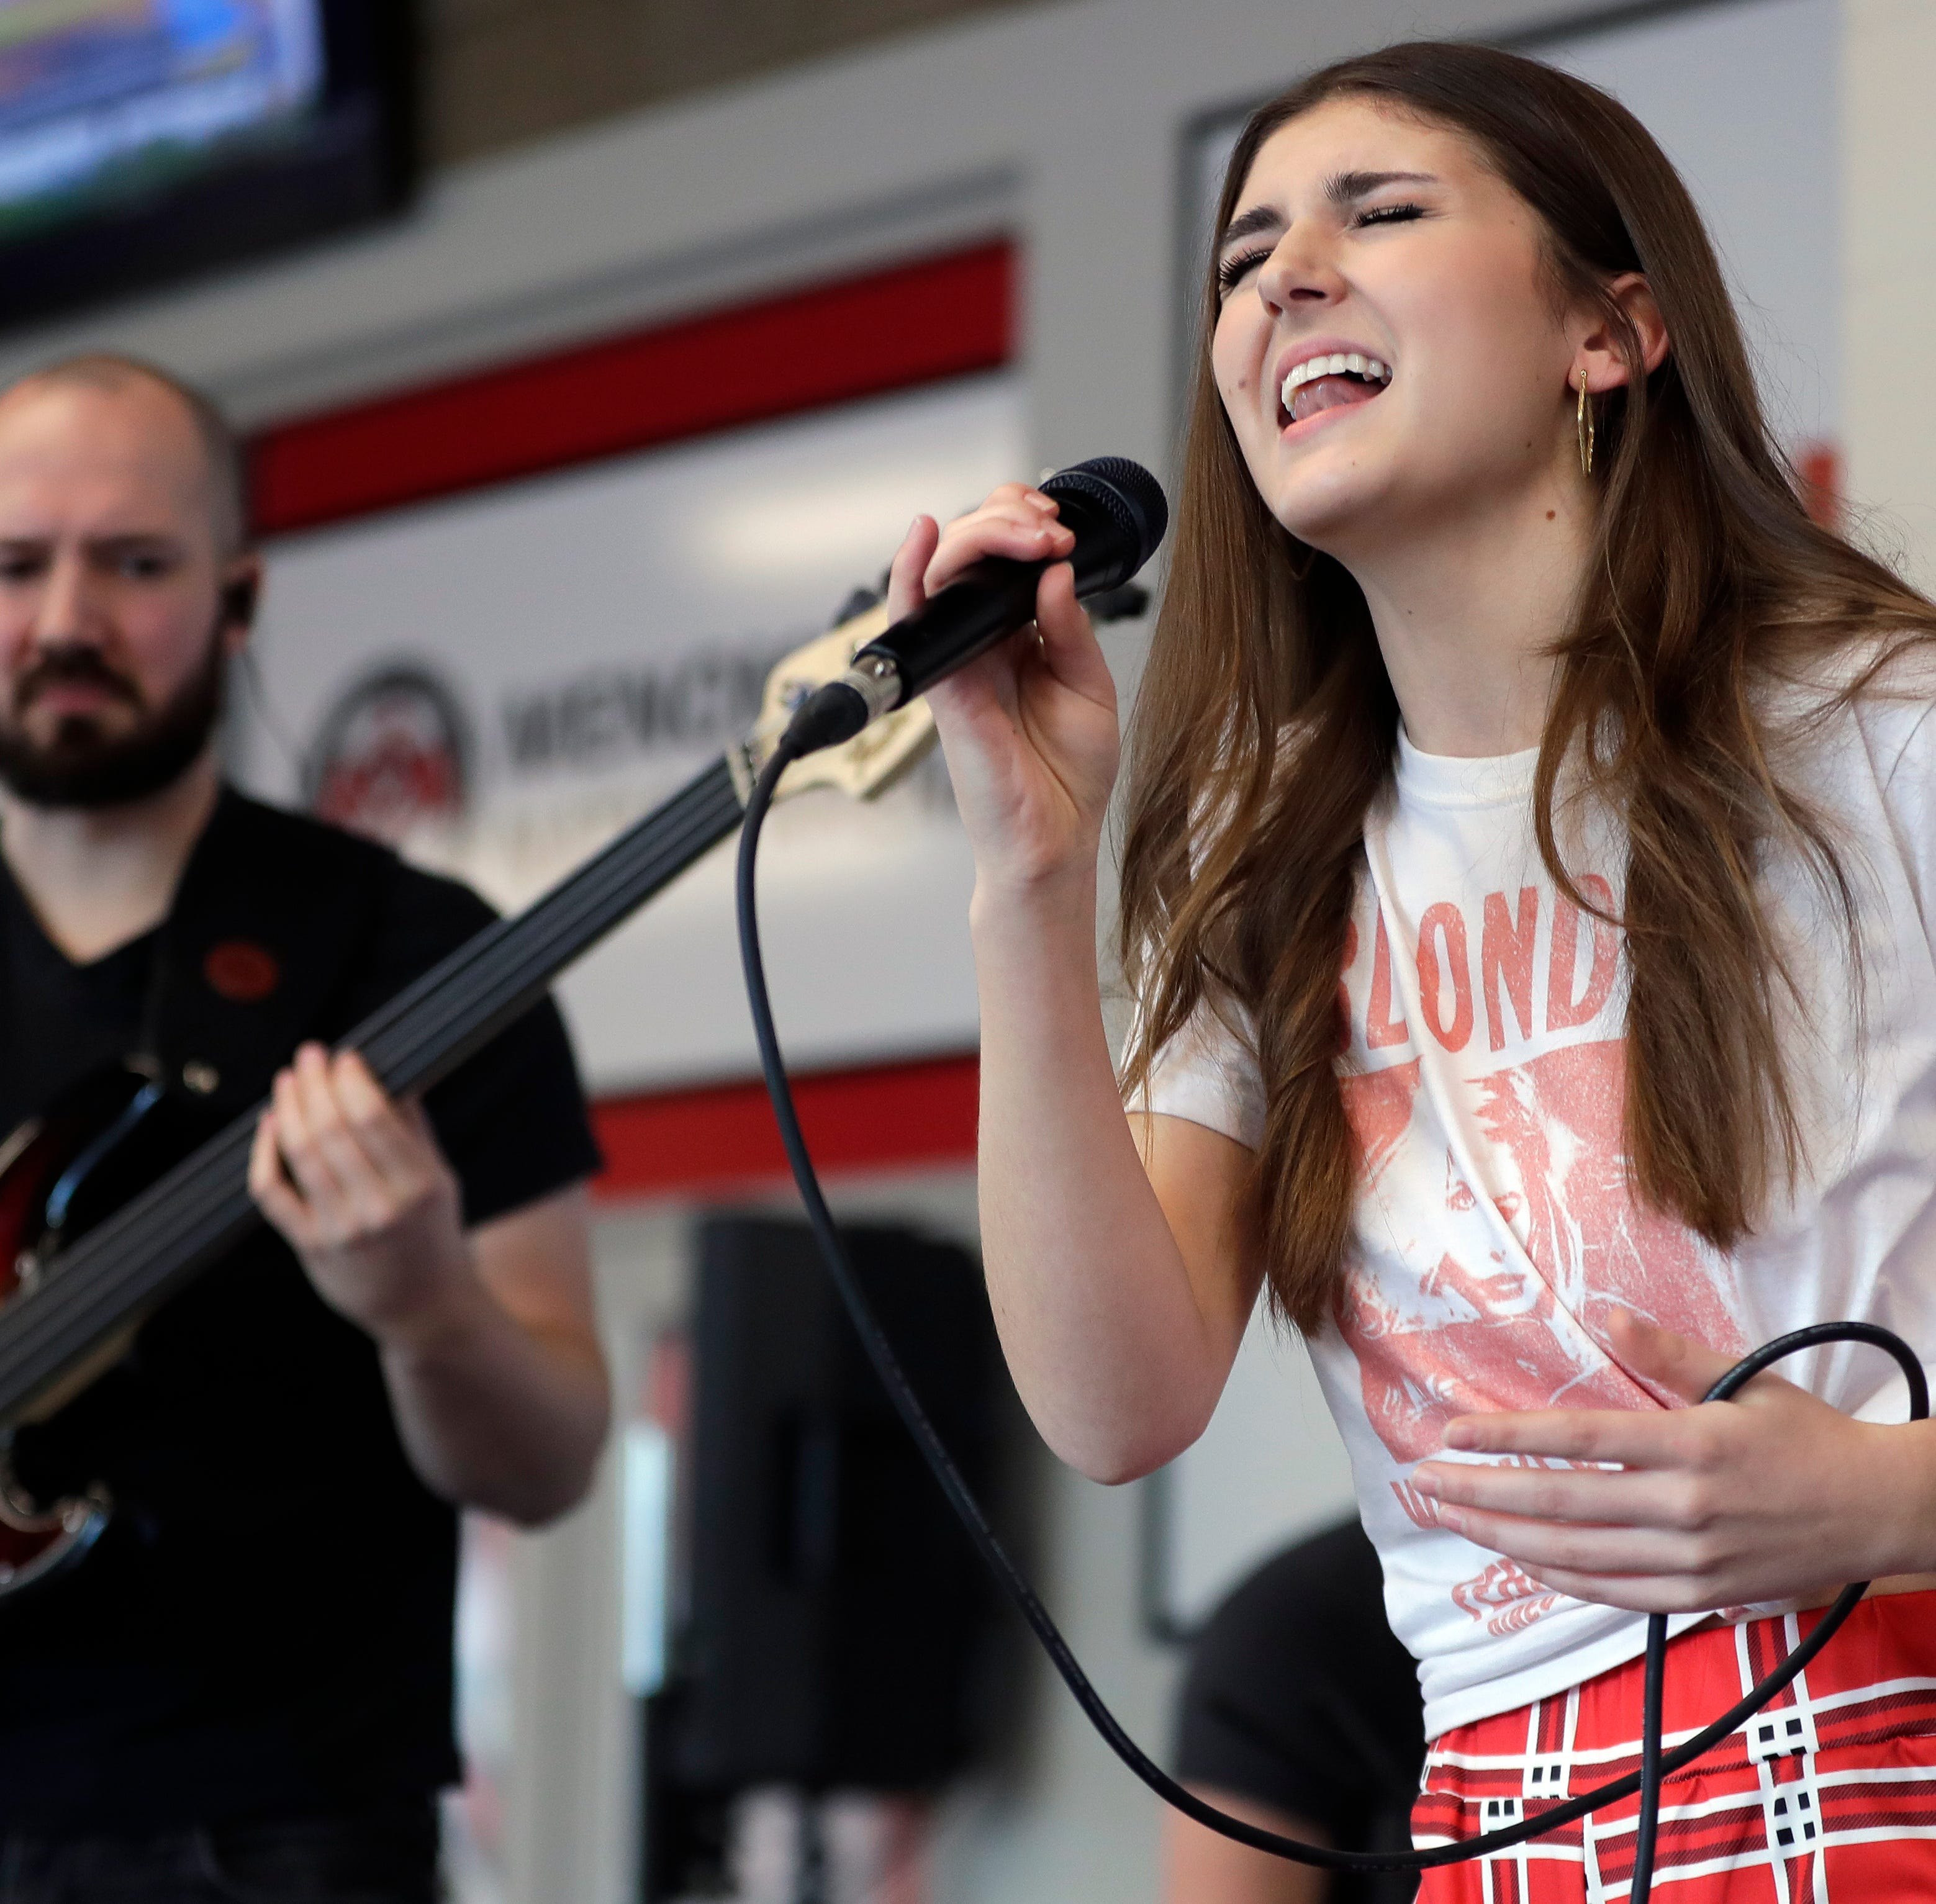 Oshkosh teen's songs fight bullying and depression. She's on American Idol this season.